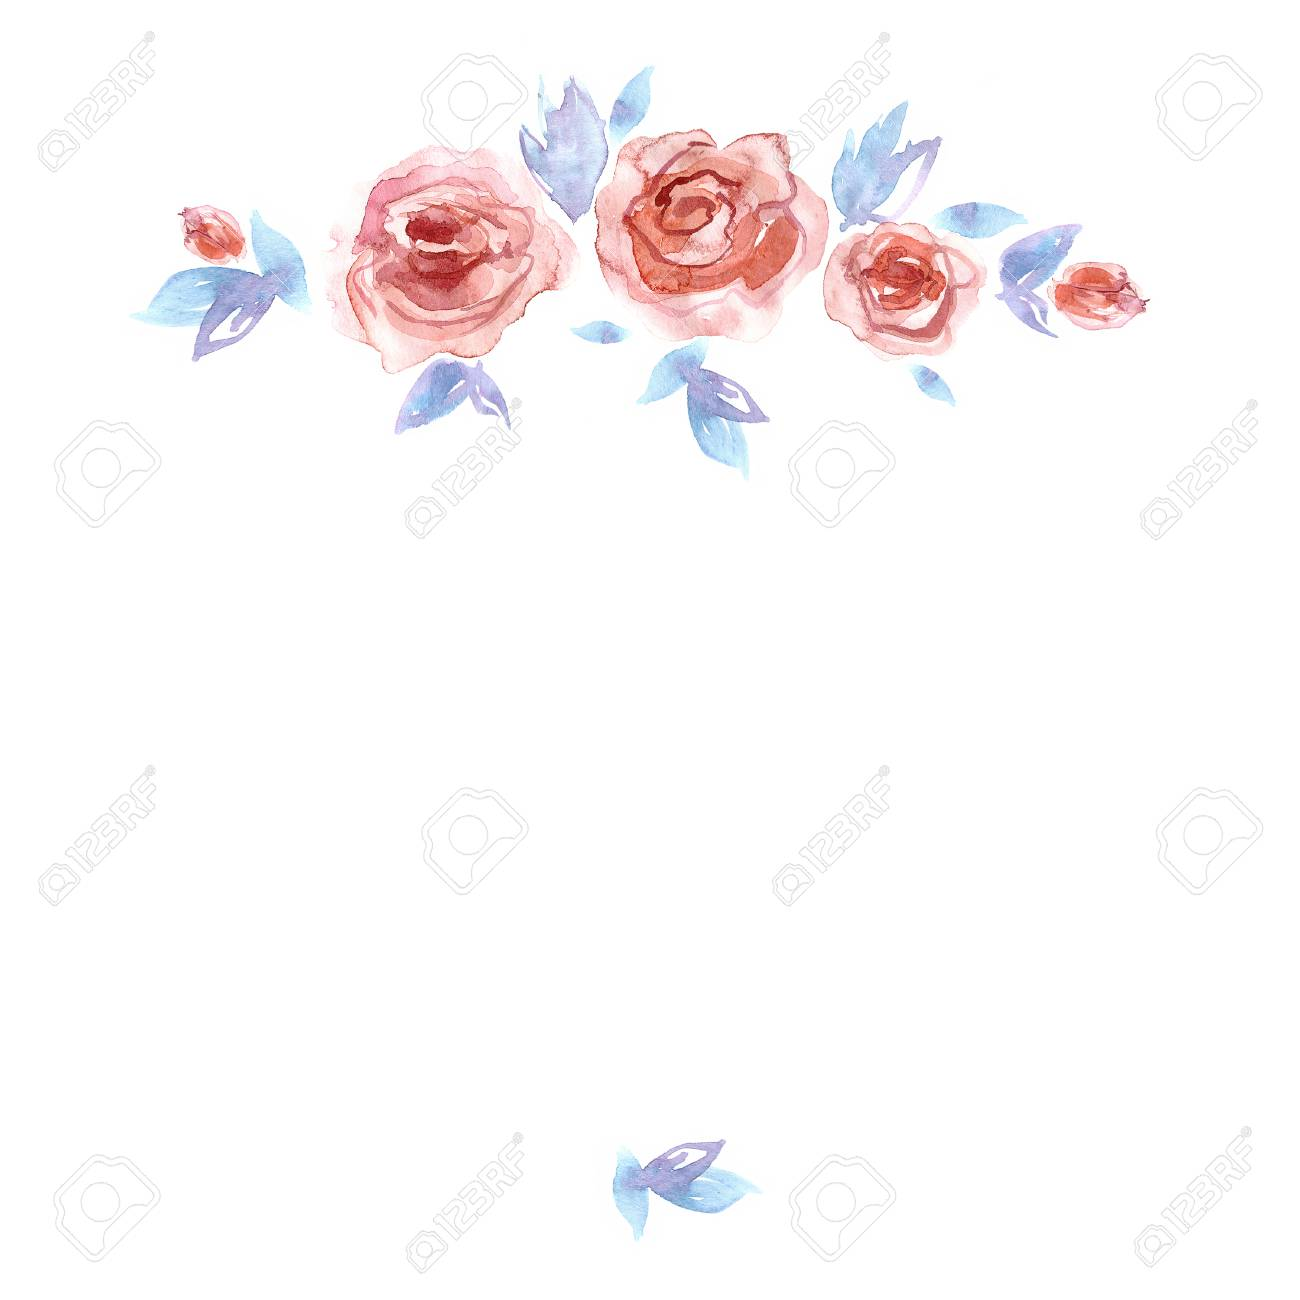 Cute Watercolor Flower Frame Background With Roses Invitation Wedding Card Birthday Card